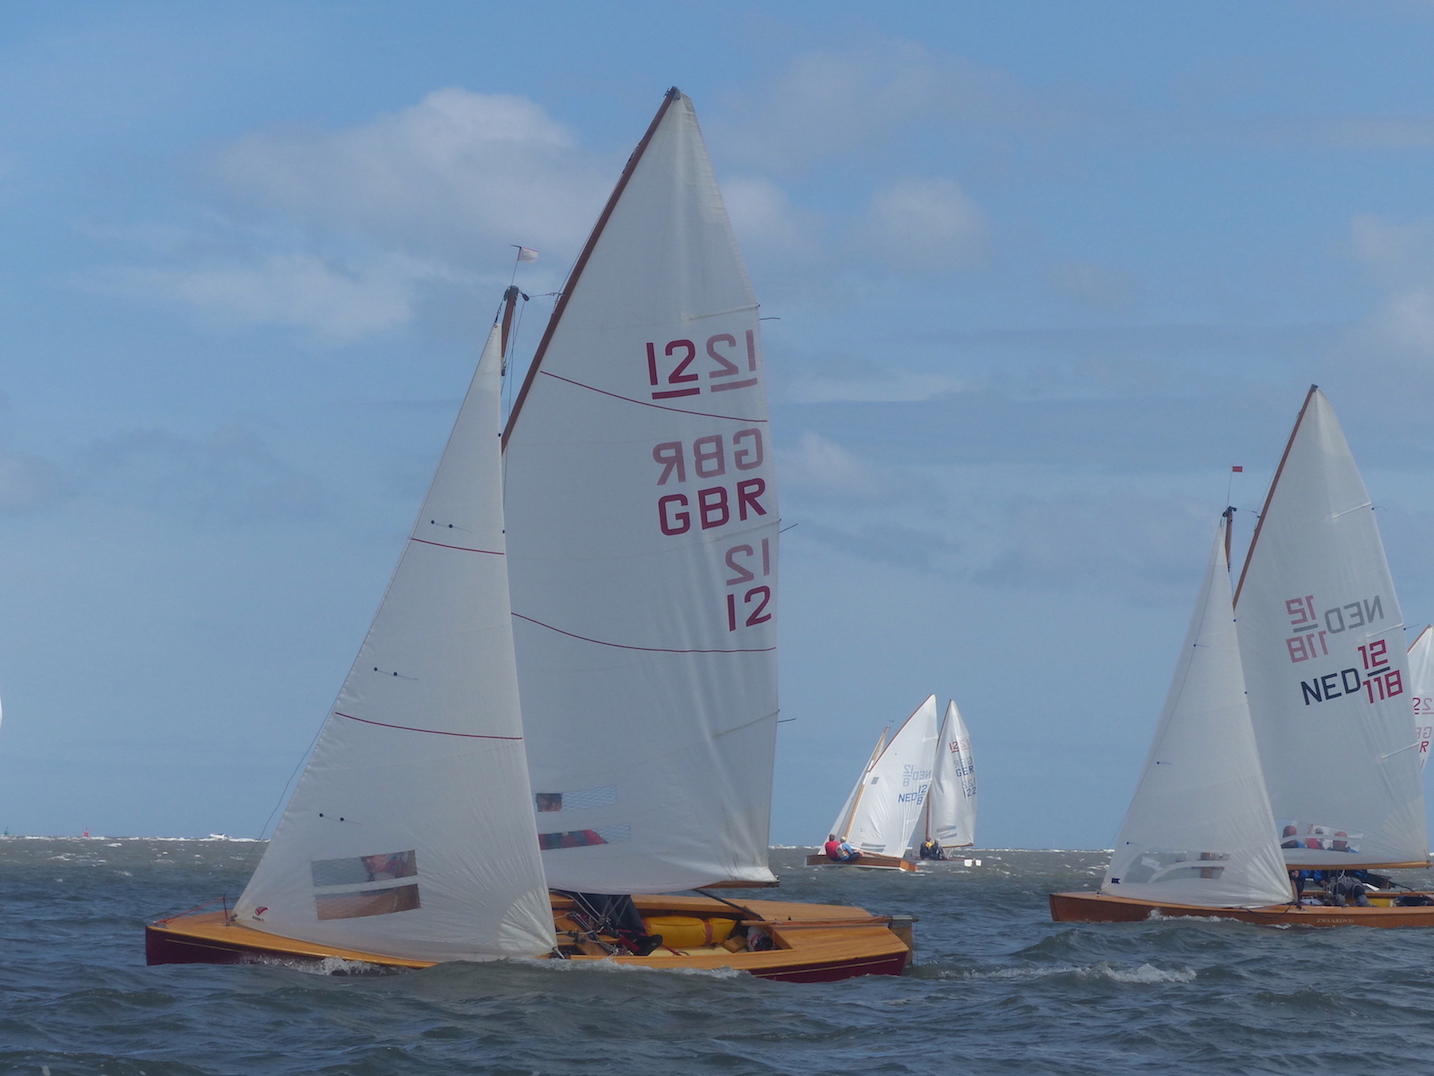 WSC GBR12 with sails catching light behind